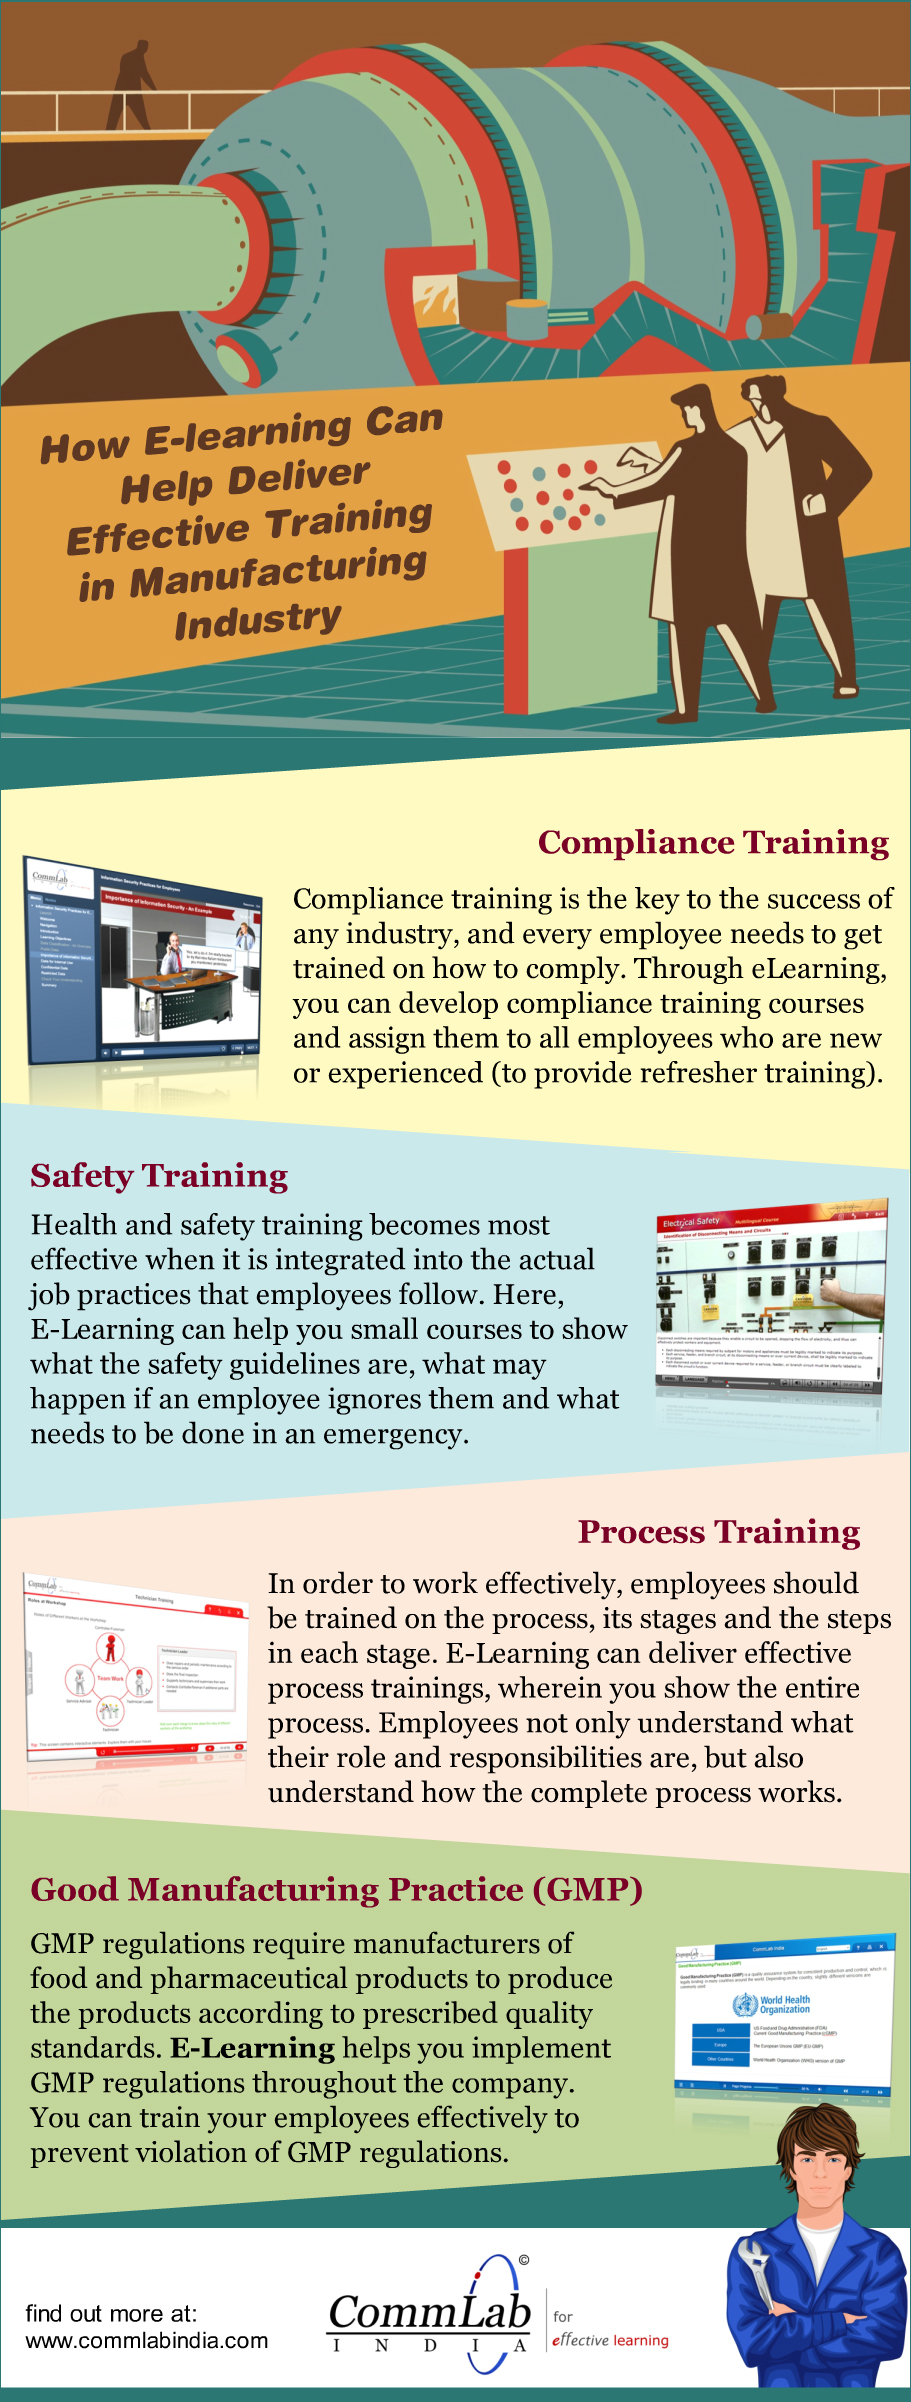 E-learning in the Manufacturing Sector - Imparting Excellent Training – An Infographic